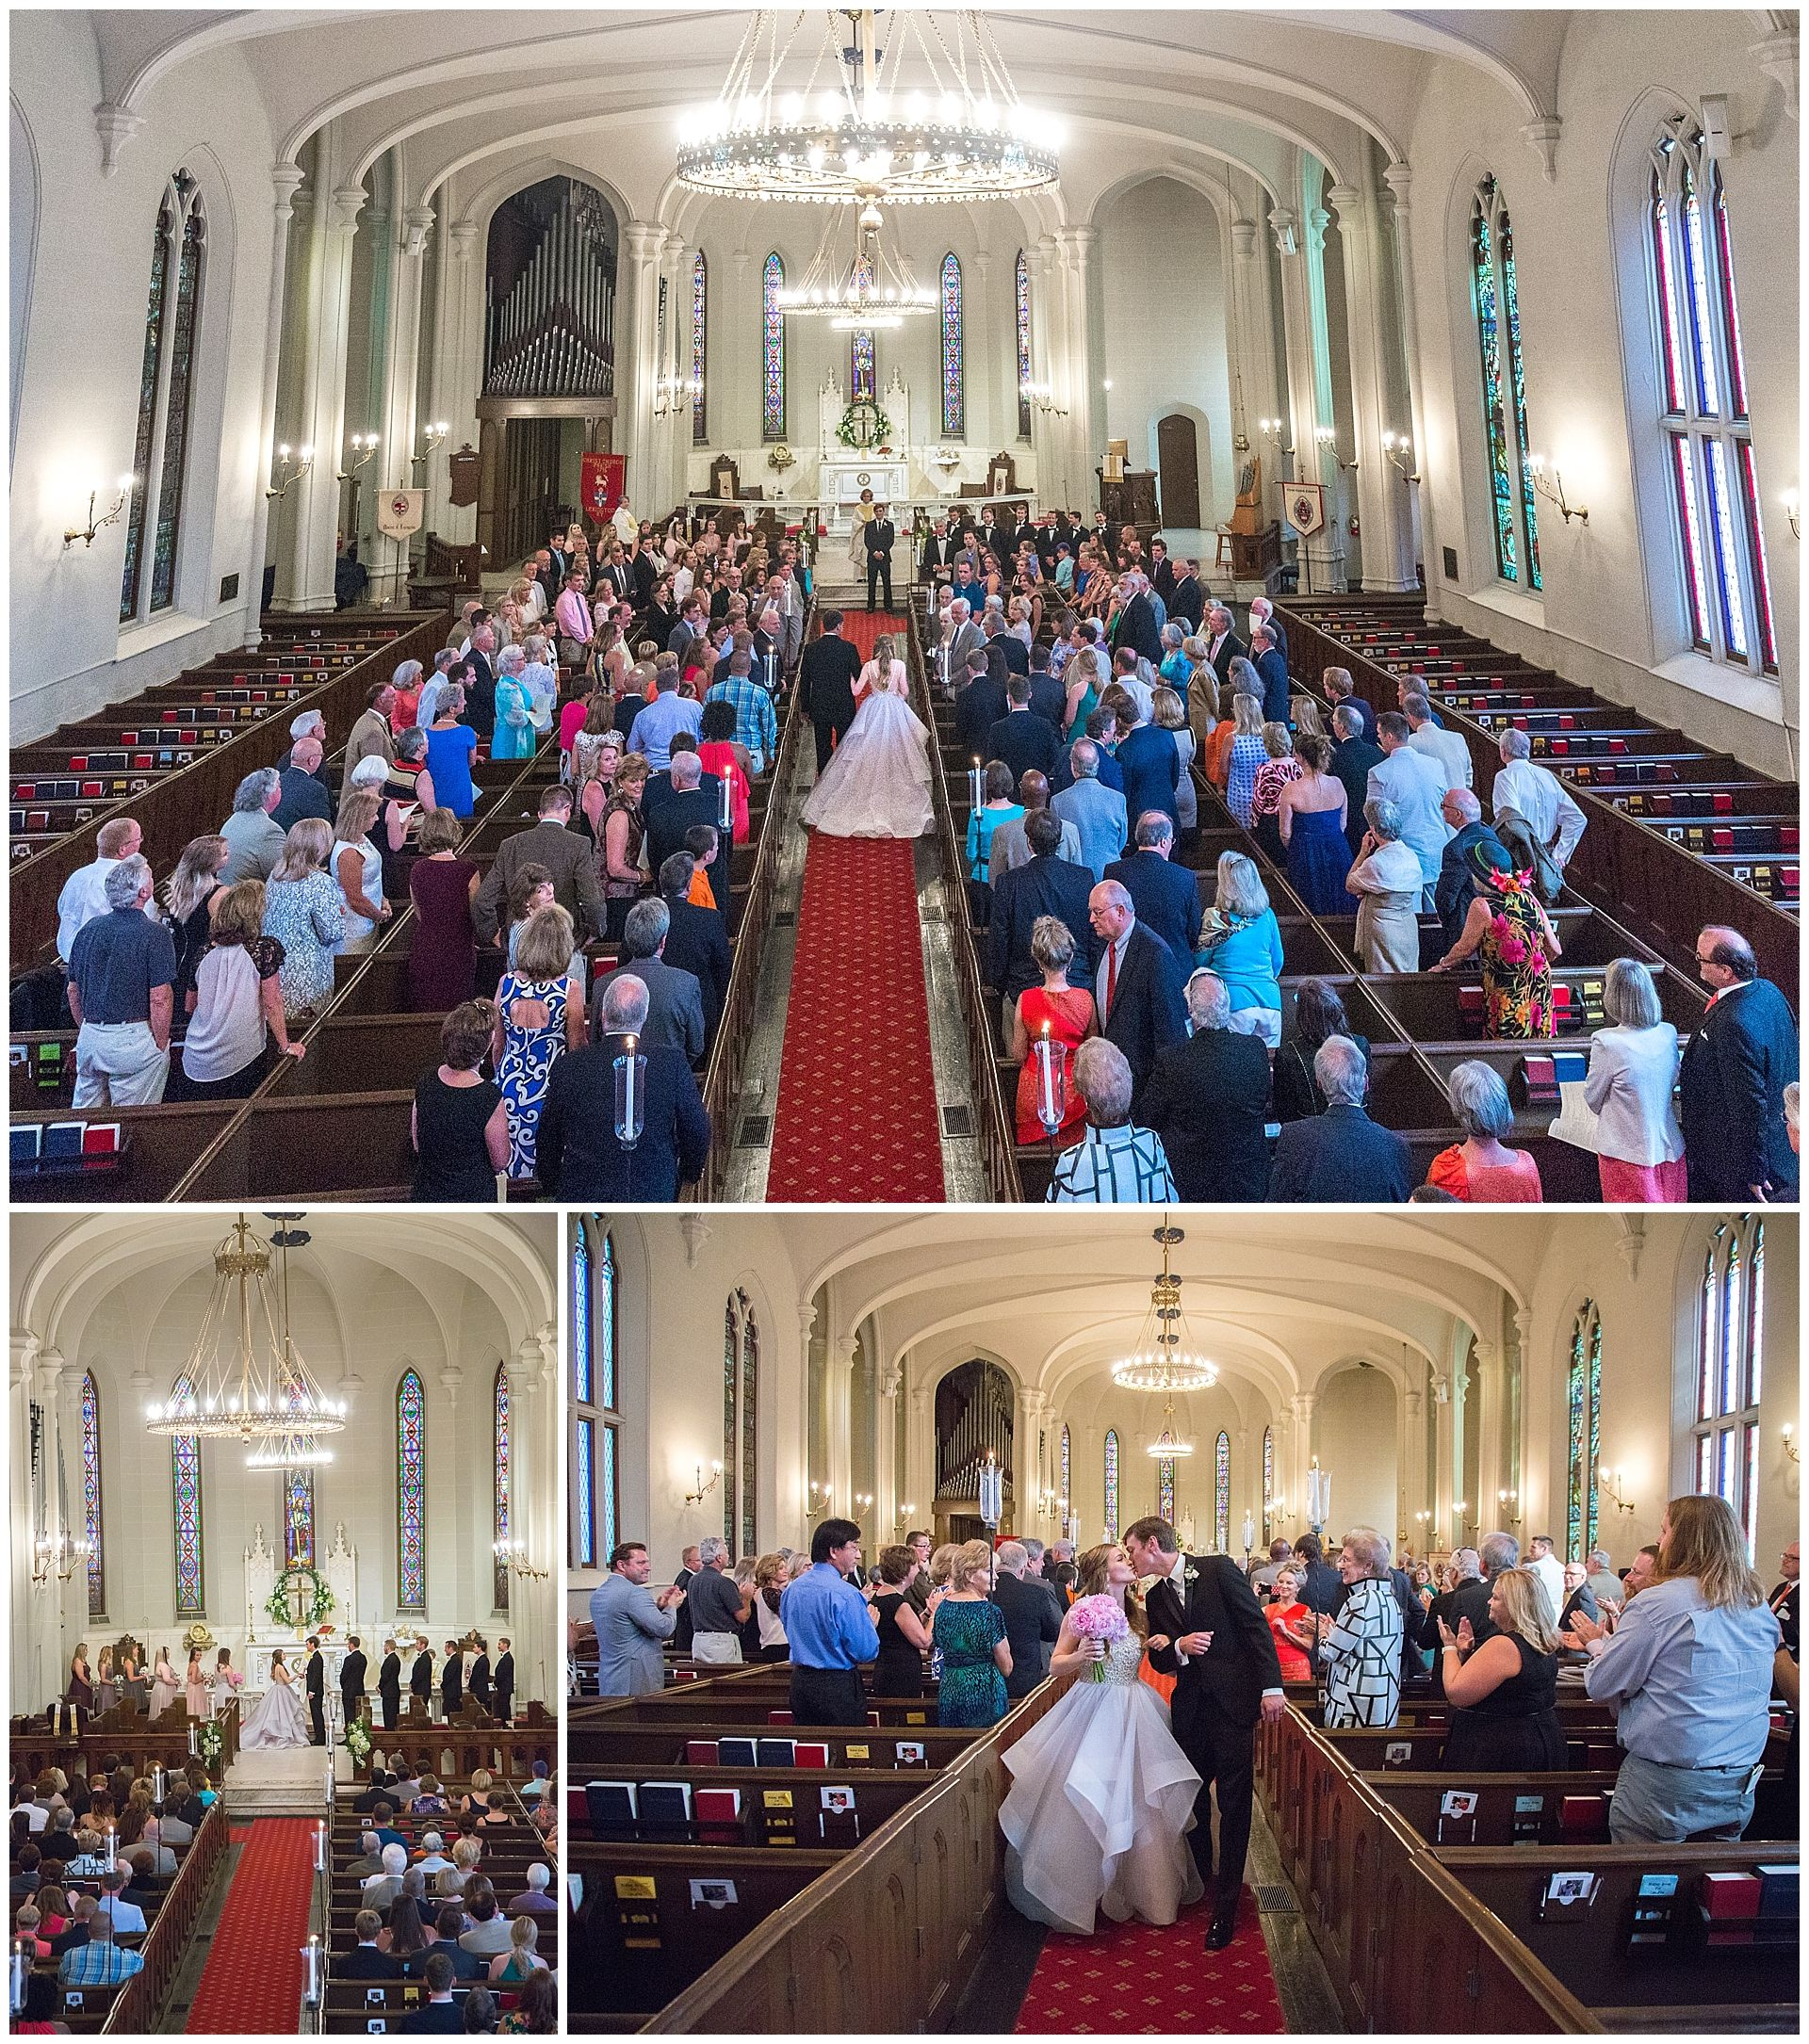 Wedding Photography Ceremony At Christ Church Cathedral In Kentucky Bride And Groom Dress